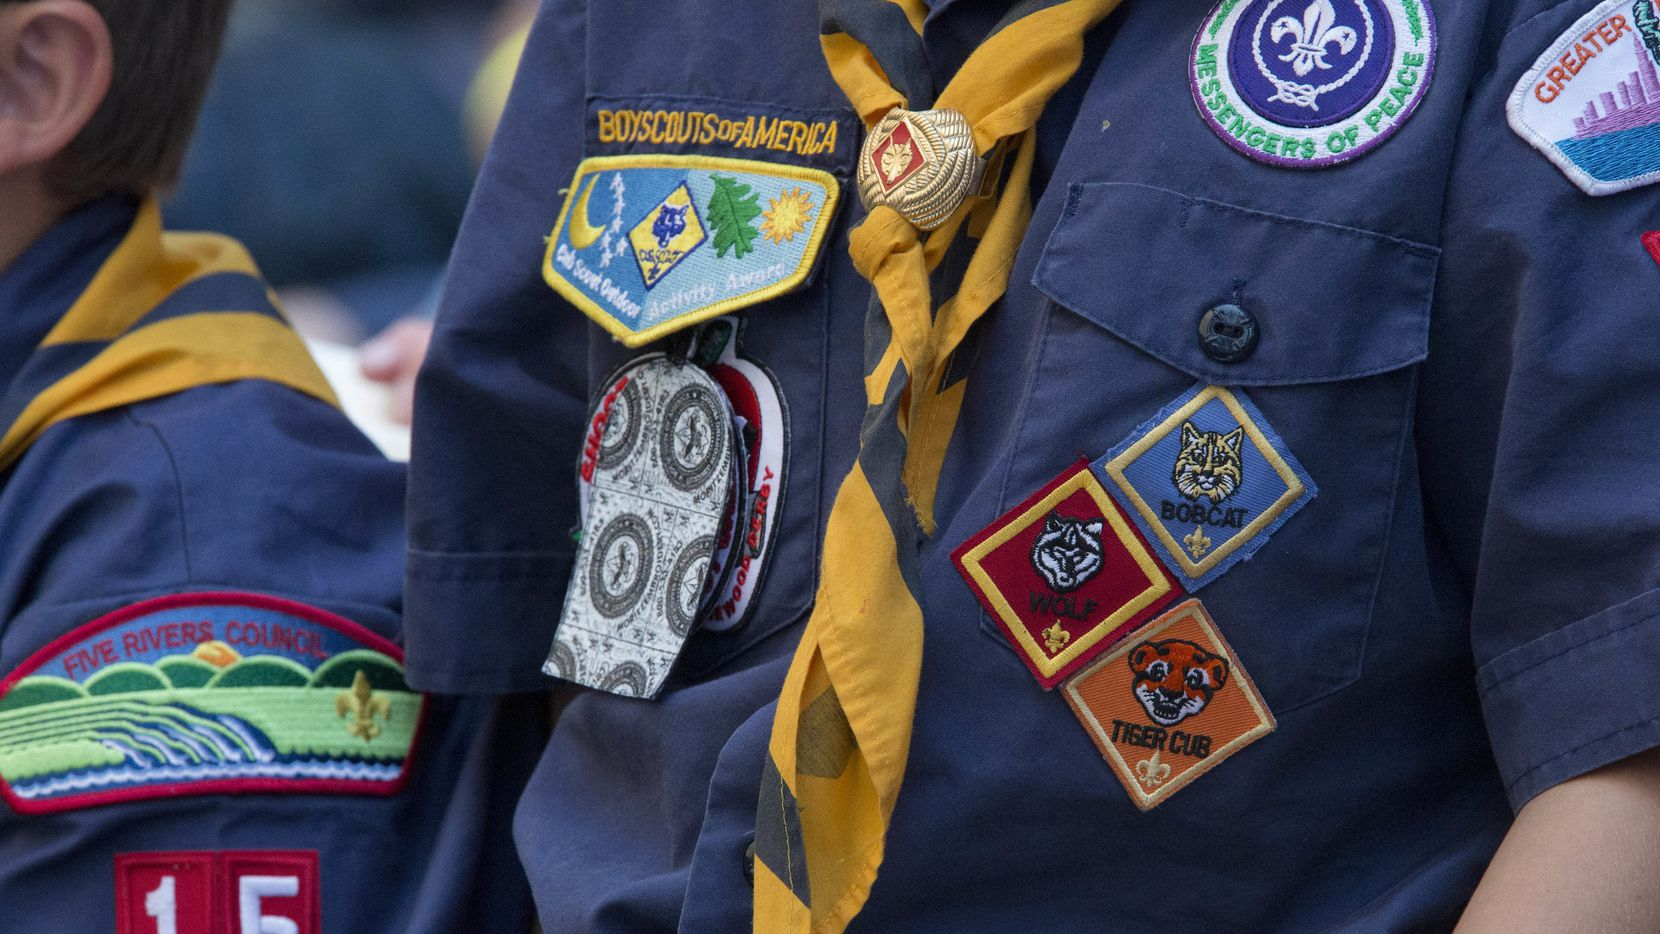 This week's recall affects uniform slides worn by Cub Scouts as they progress through the Lion, Tiger, Wolf and Webelo dens.